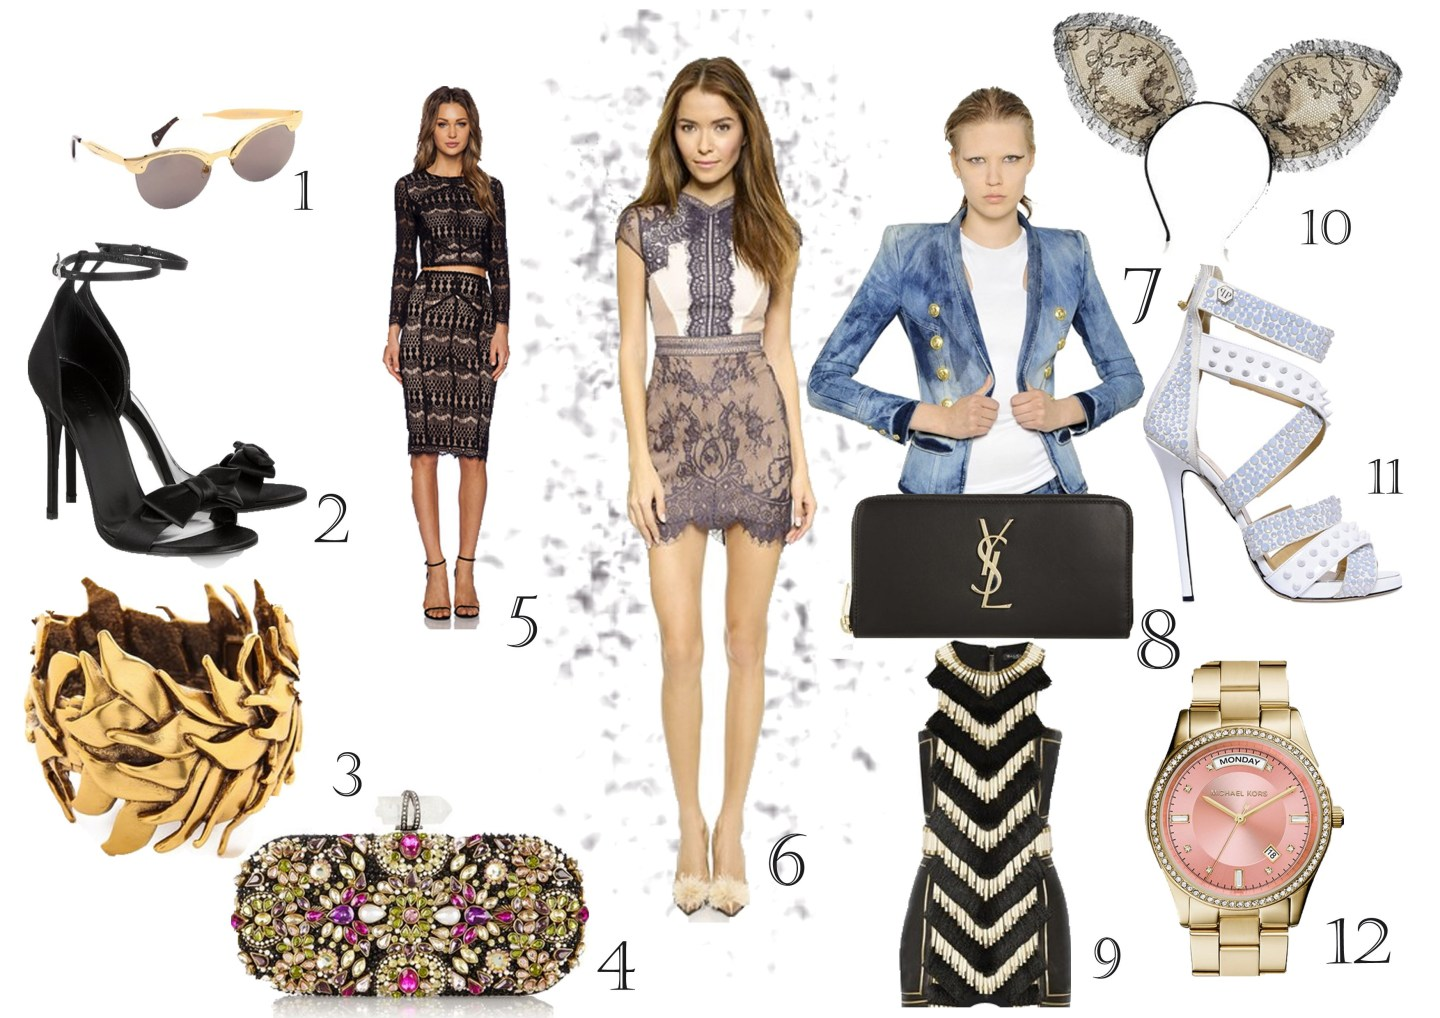 Sunday Cravings - Twelve items to keep fashionable